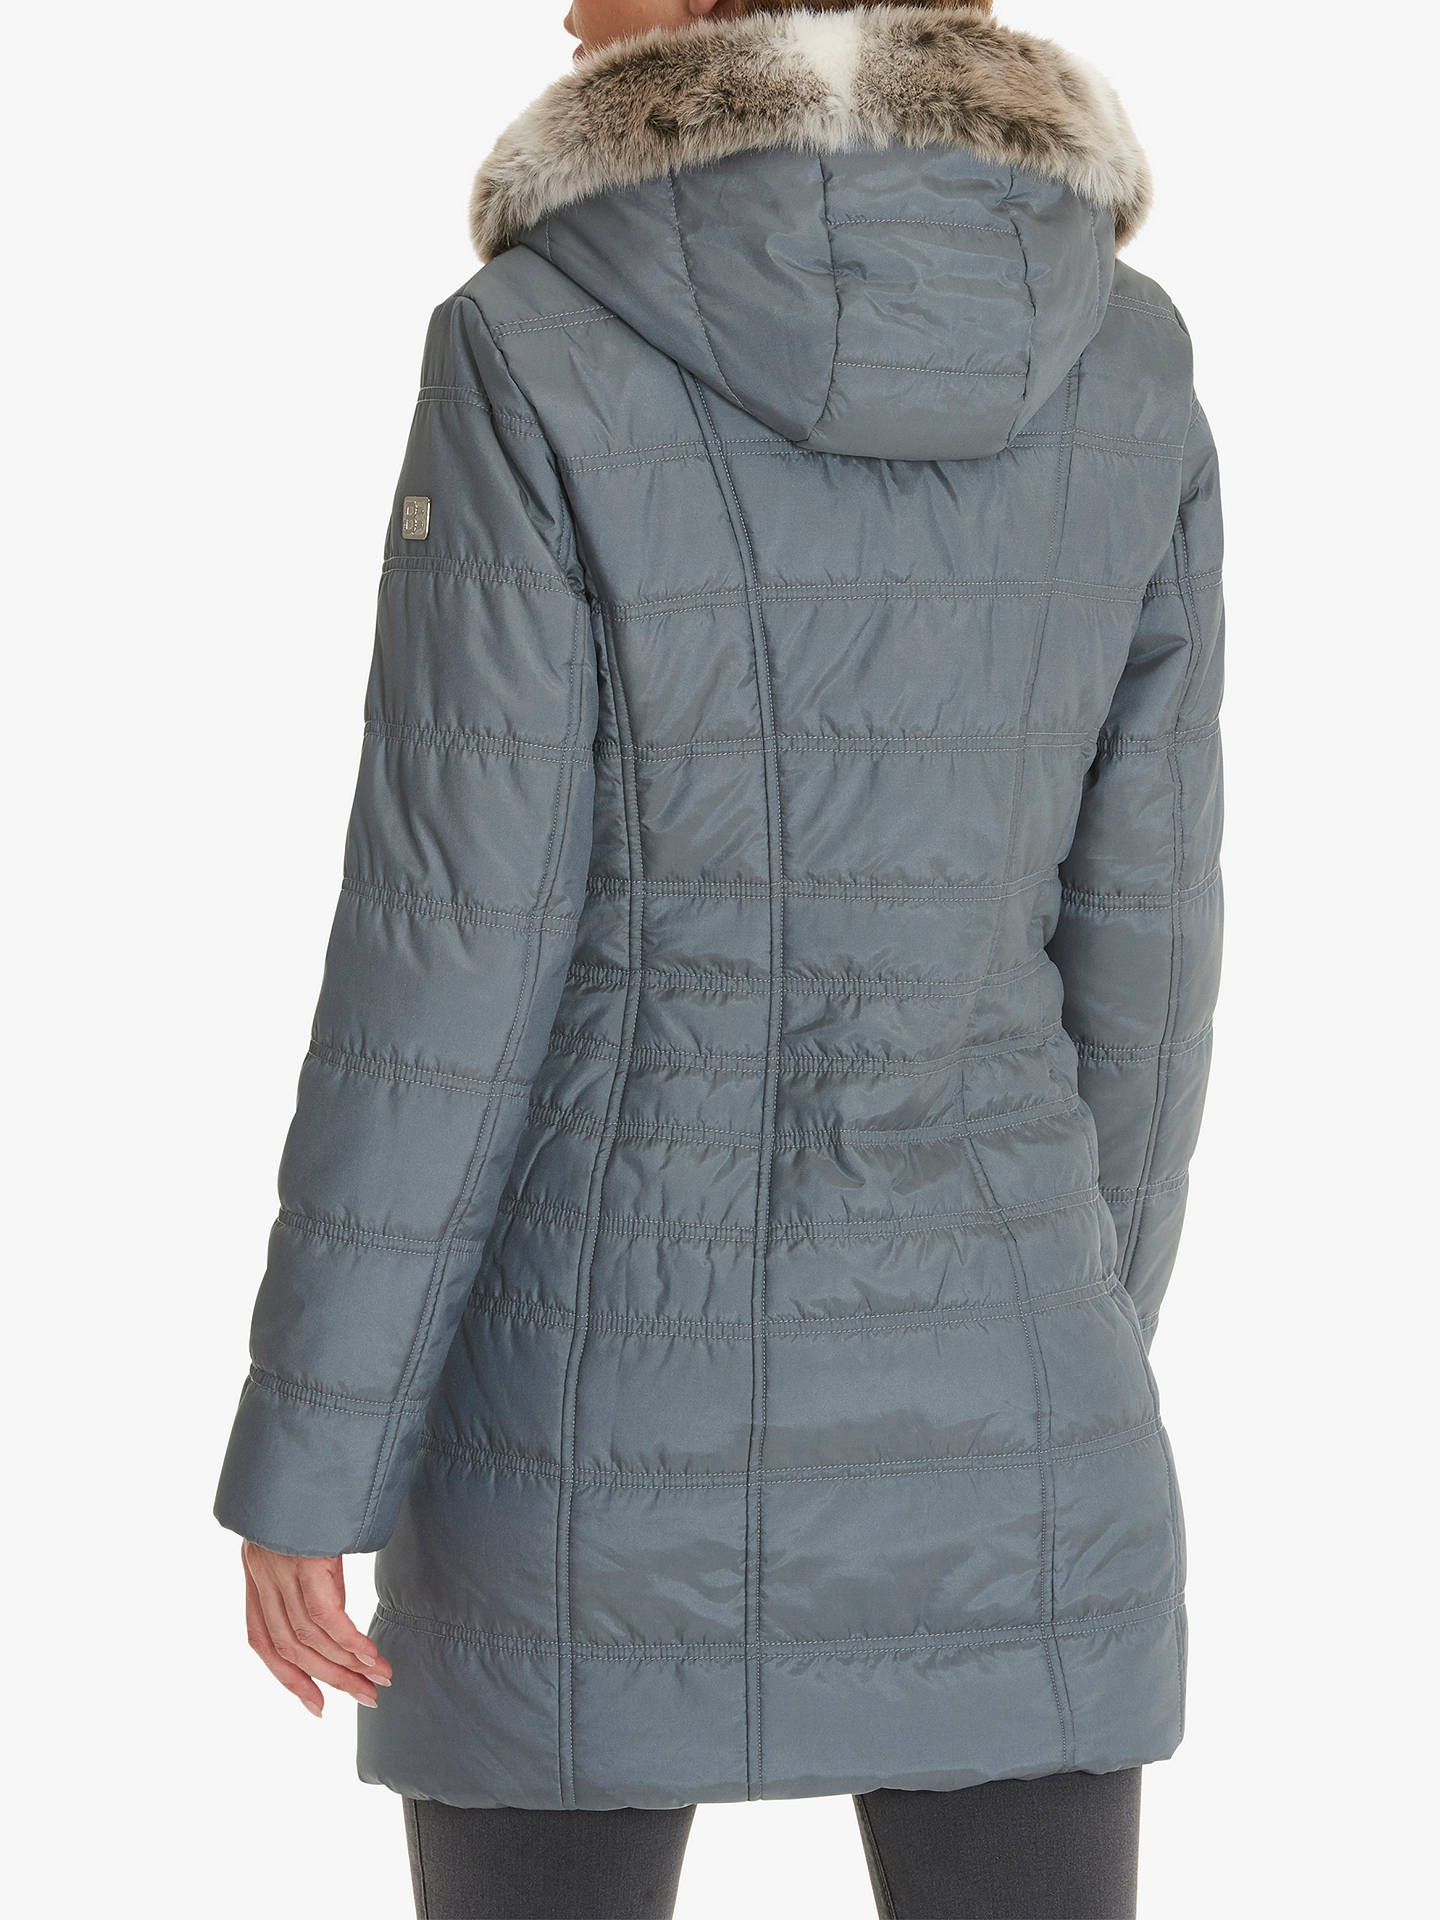 BuyBetty Barclay Quilted Puffer Coat, Ashley Blue, 10 Online at johnlewis.com